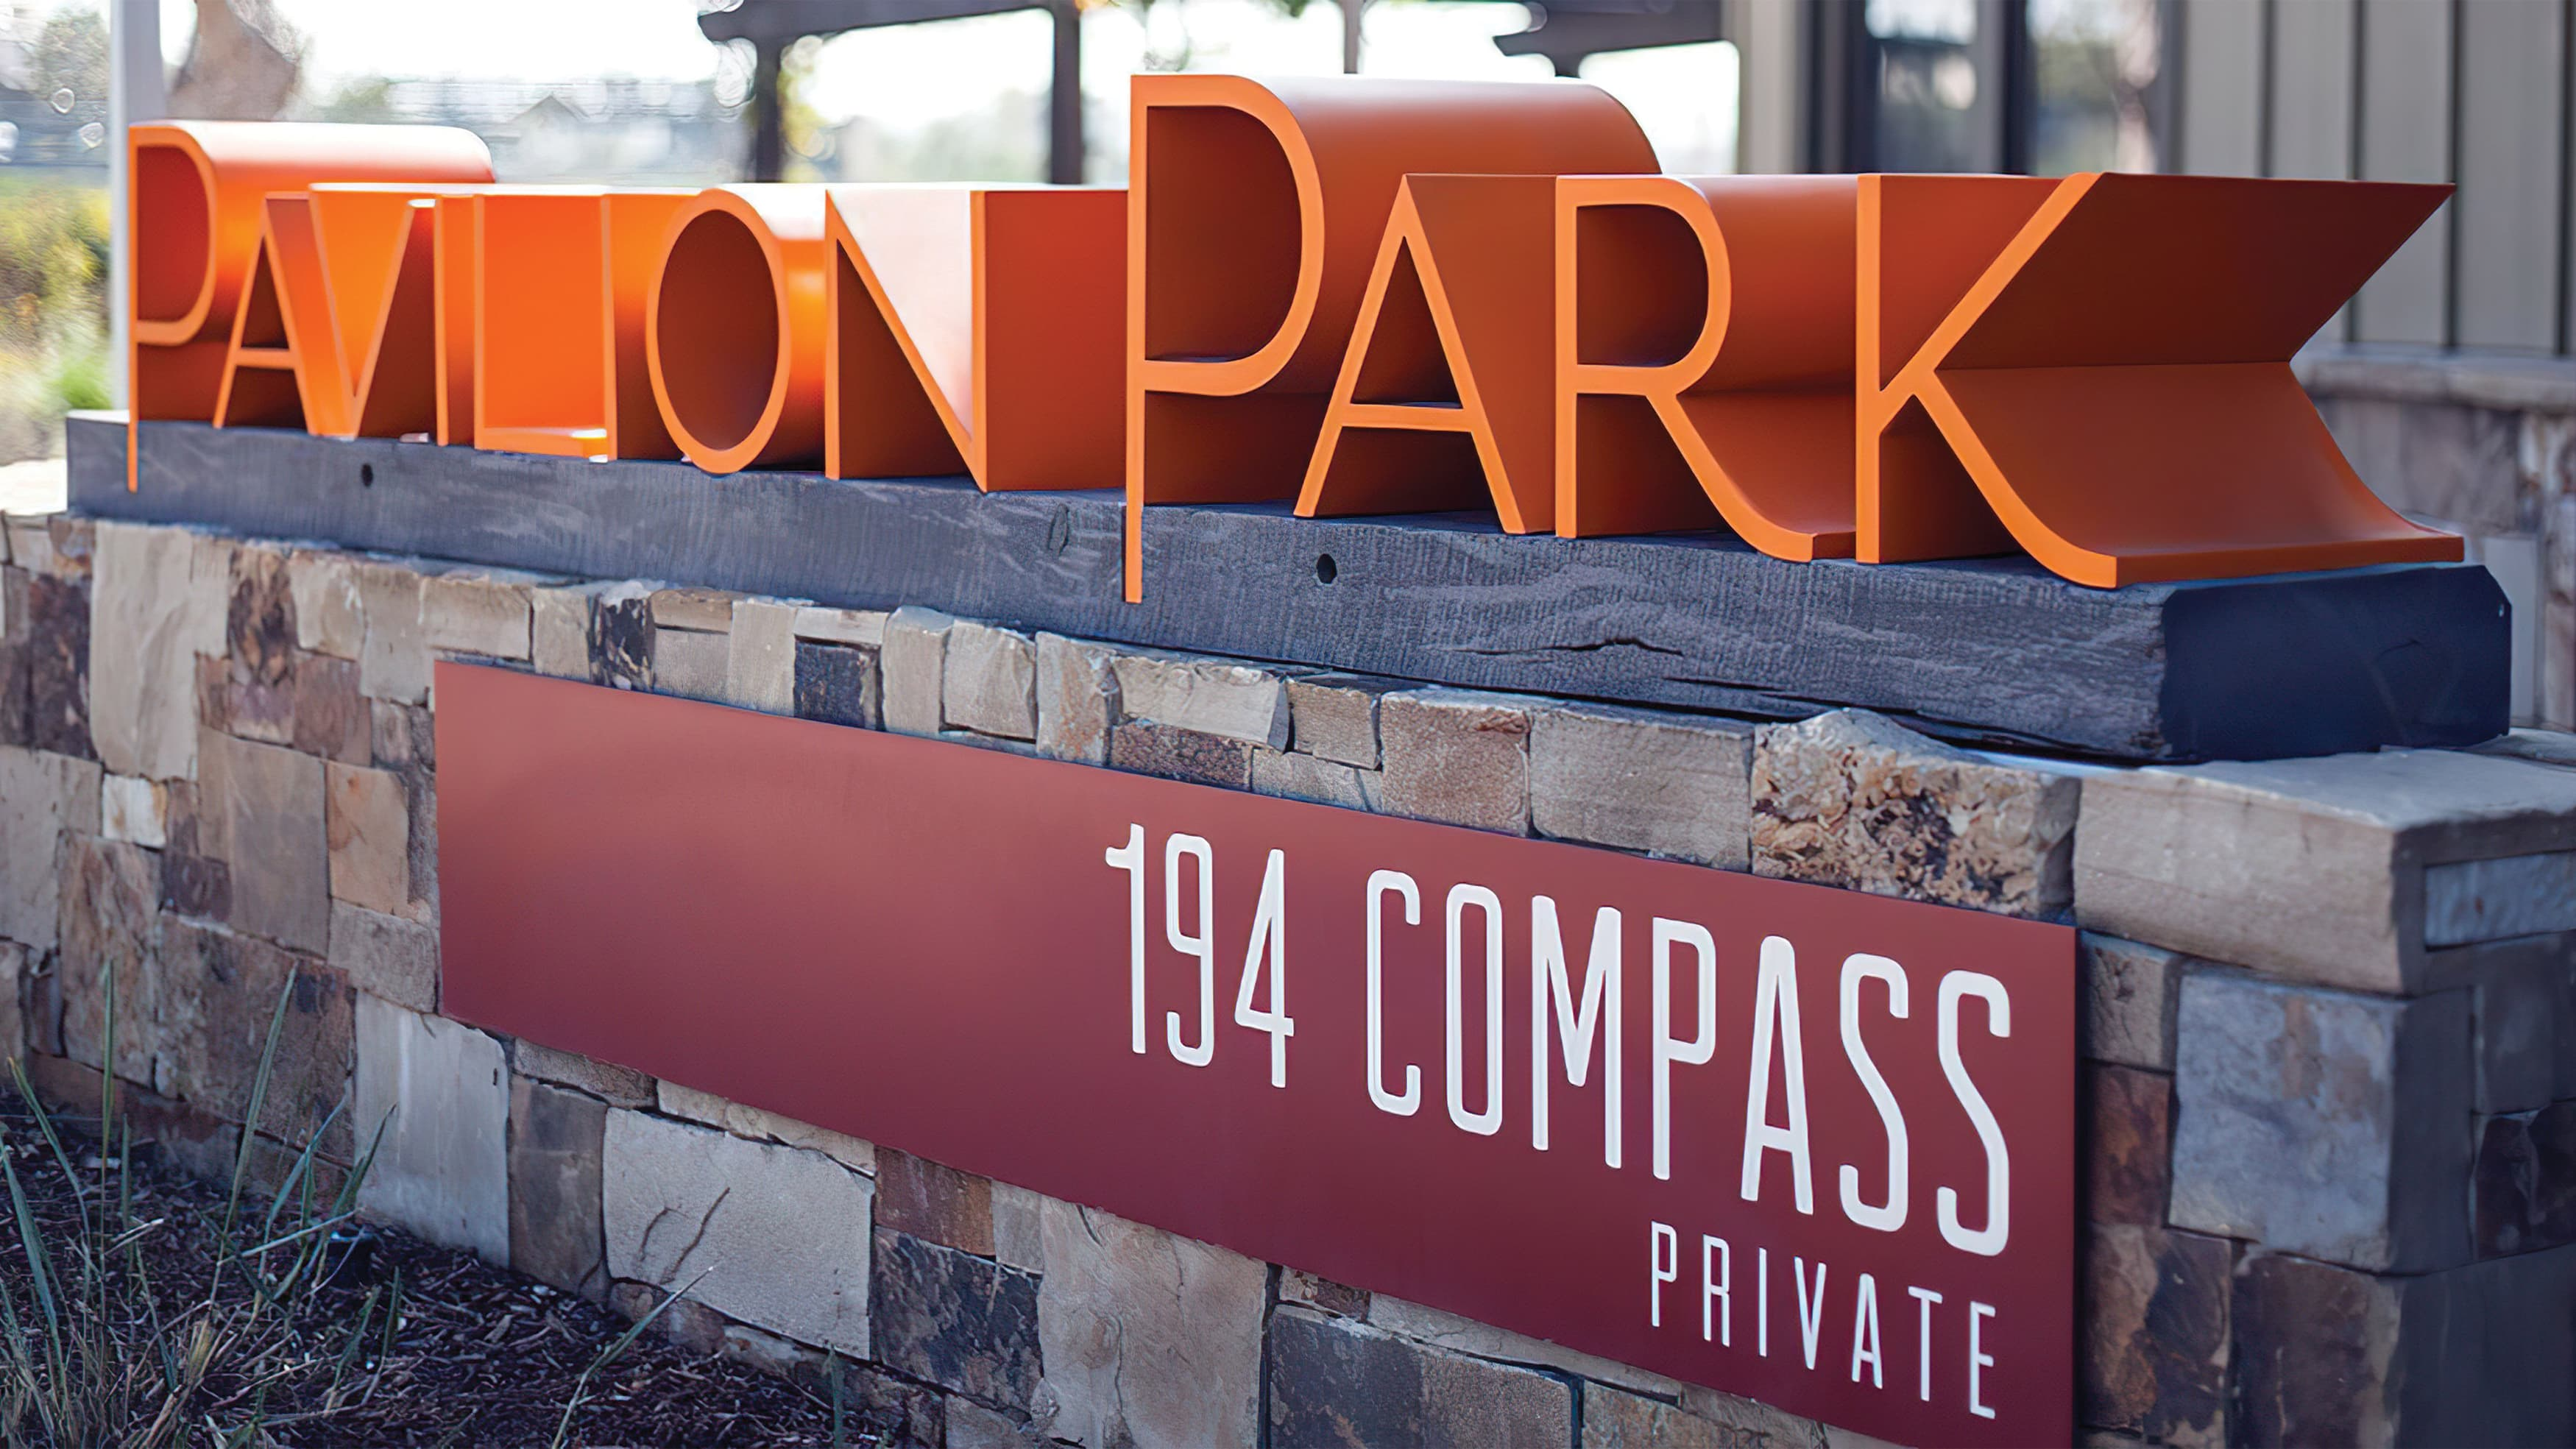 Low monument wall with park address applied to face and Pavilion Park identity on top